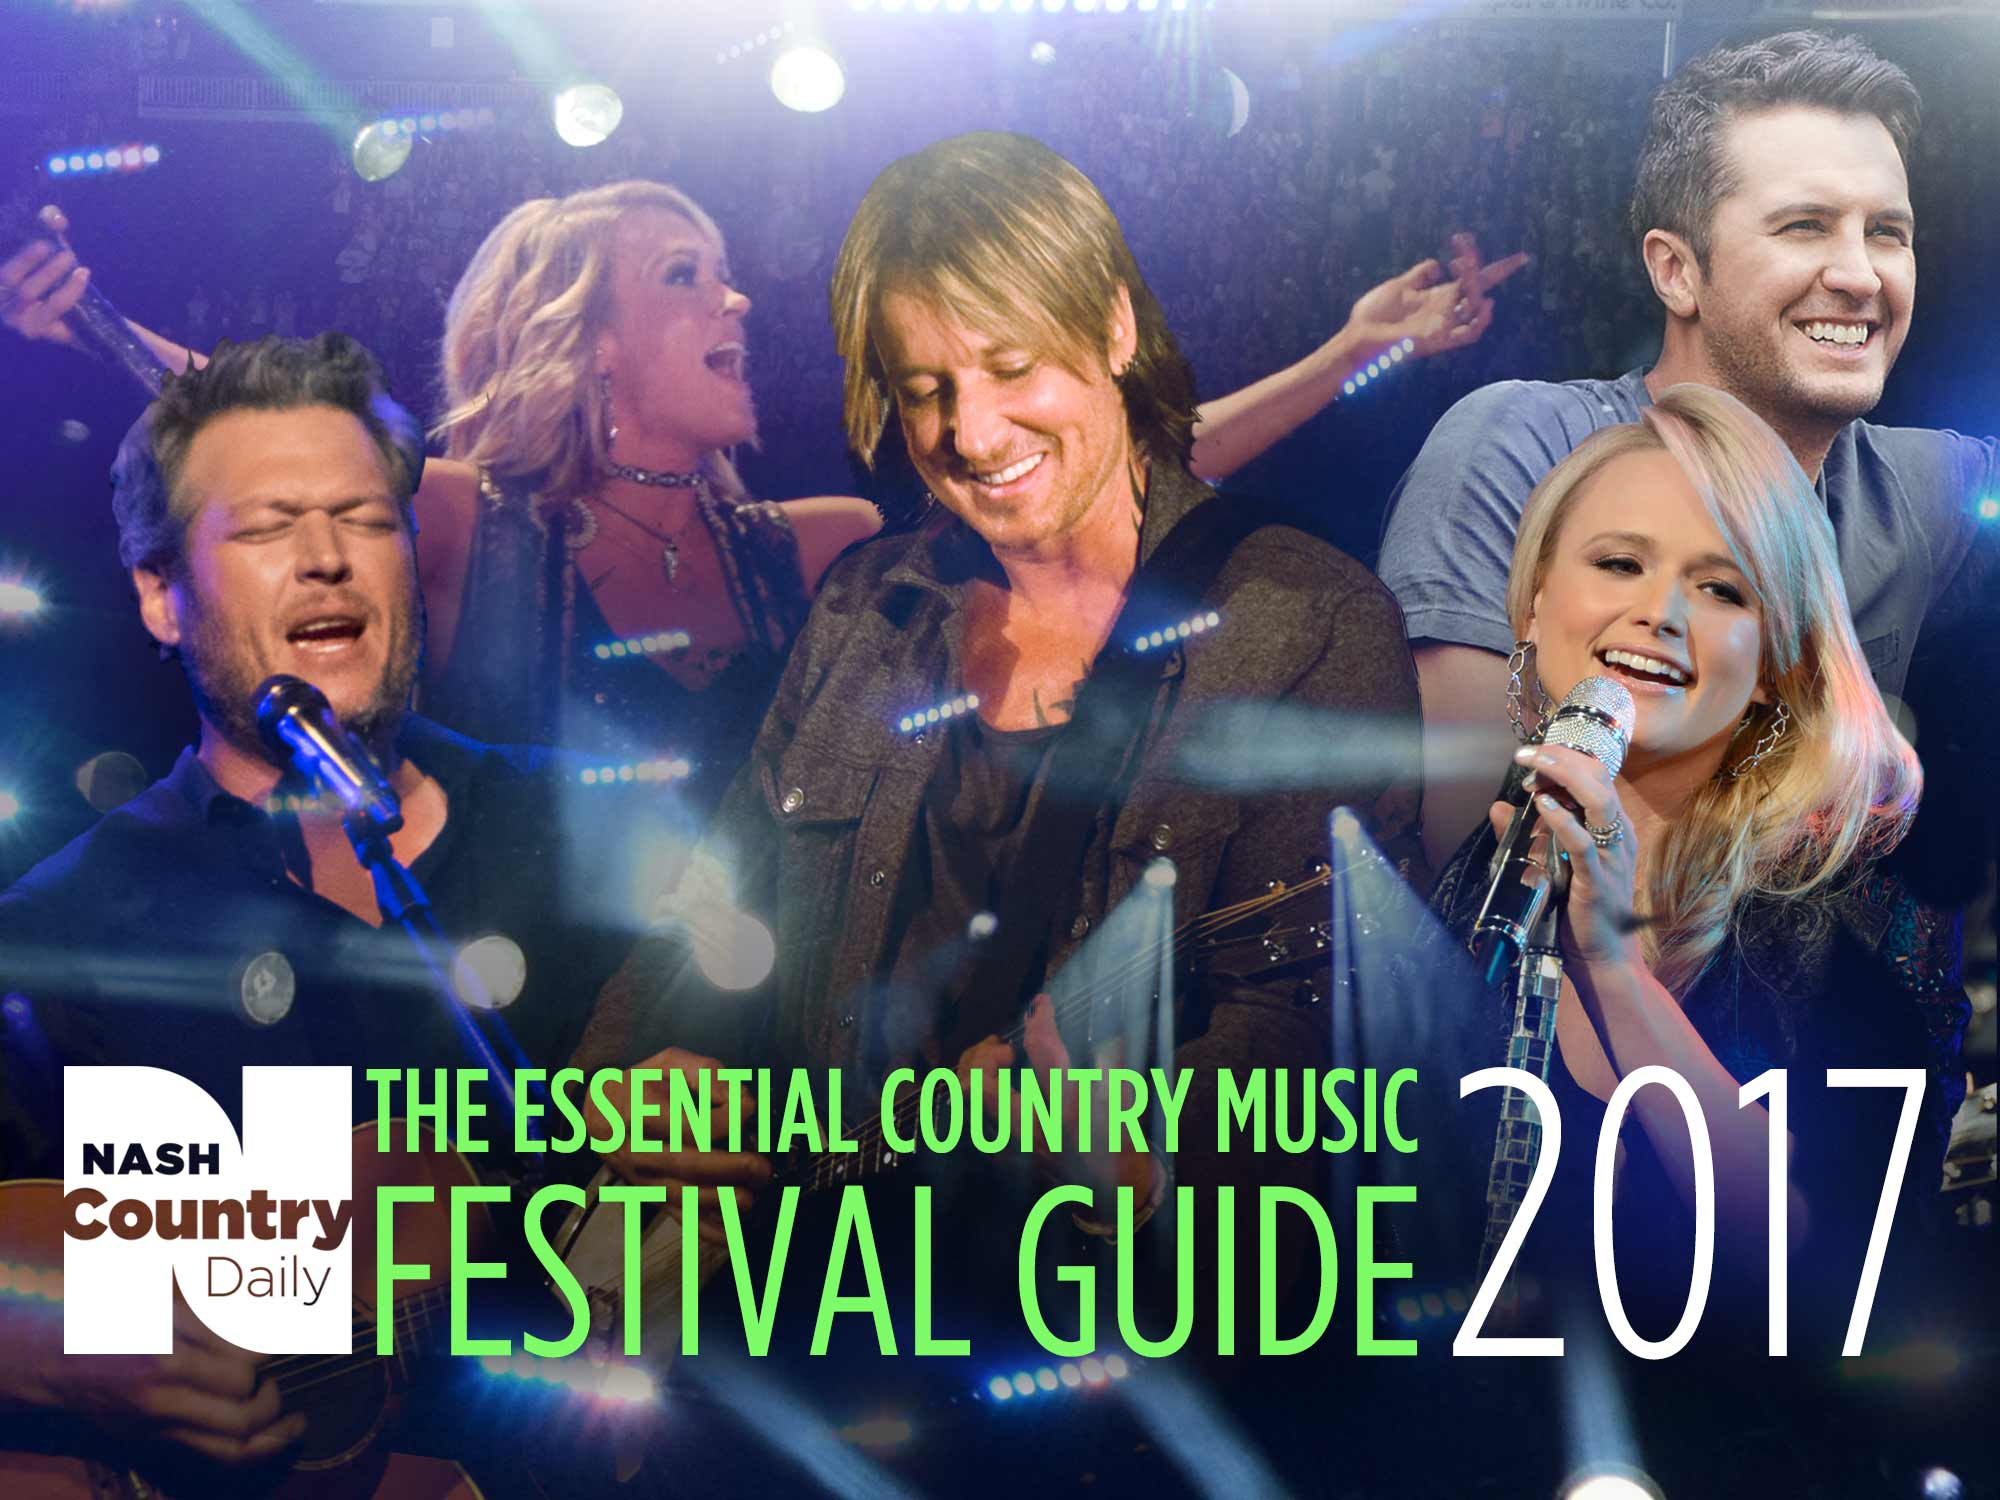 Alyssa Labelle Hot the essential 2017 country music festival guide | nash